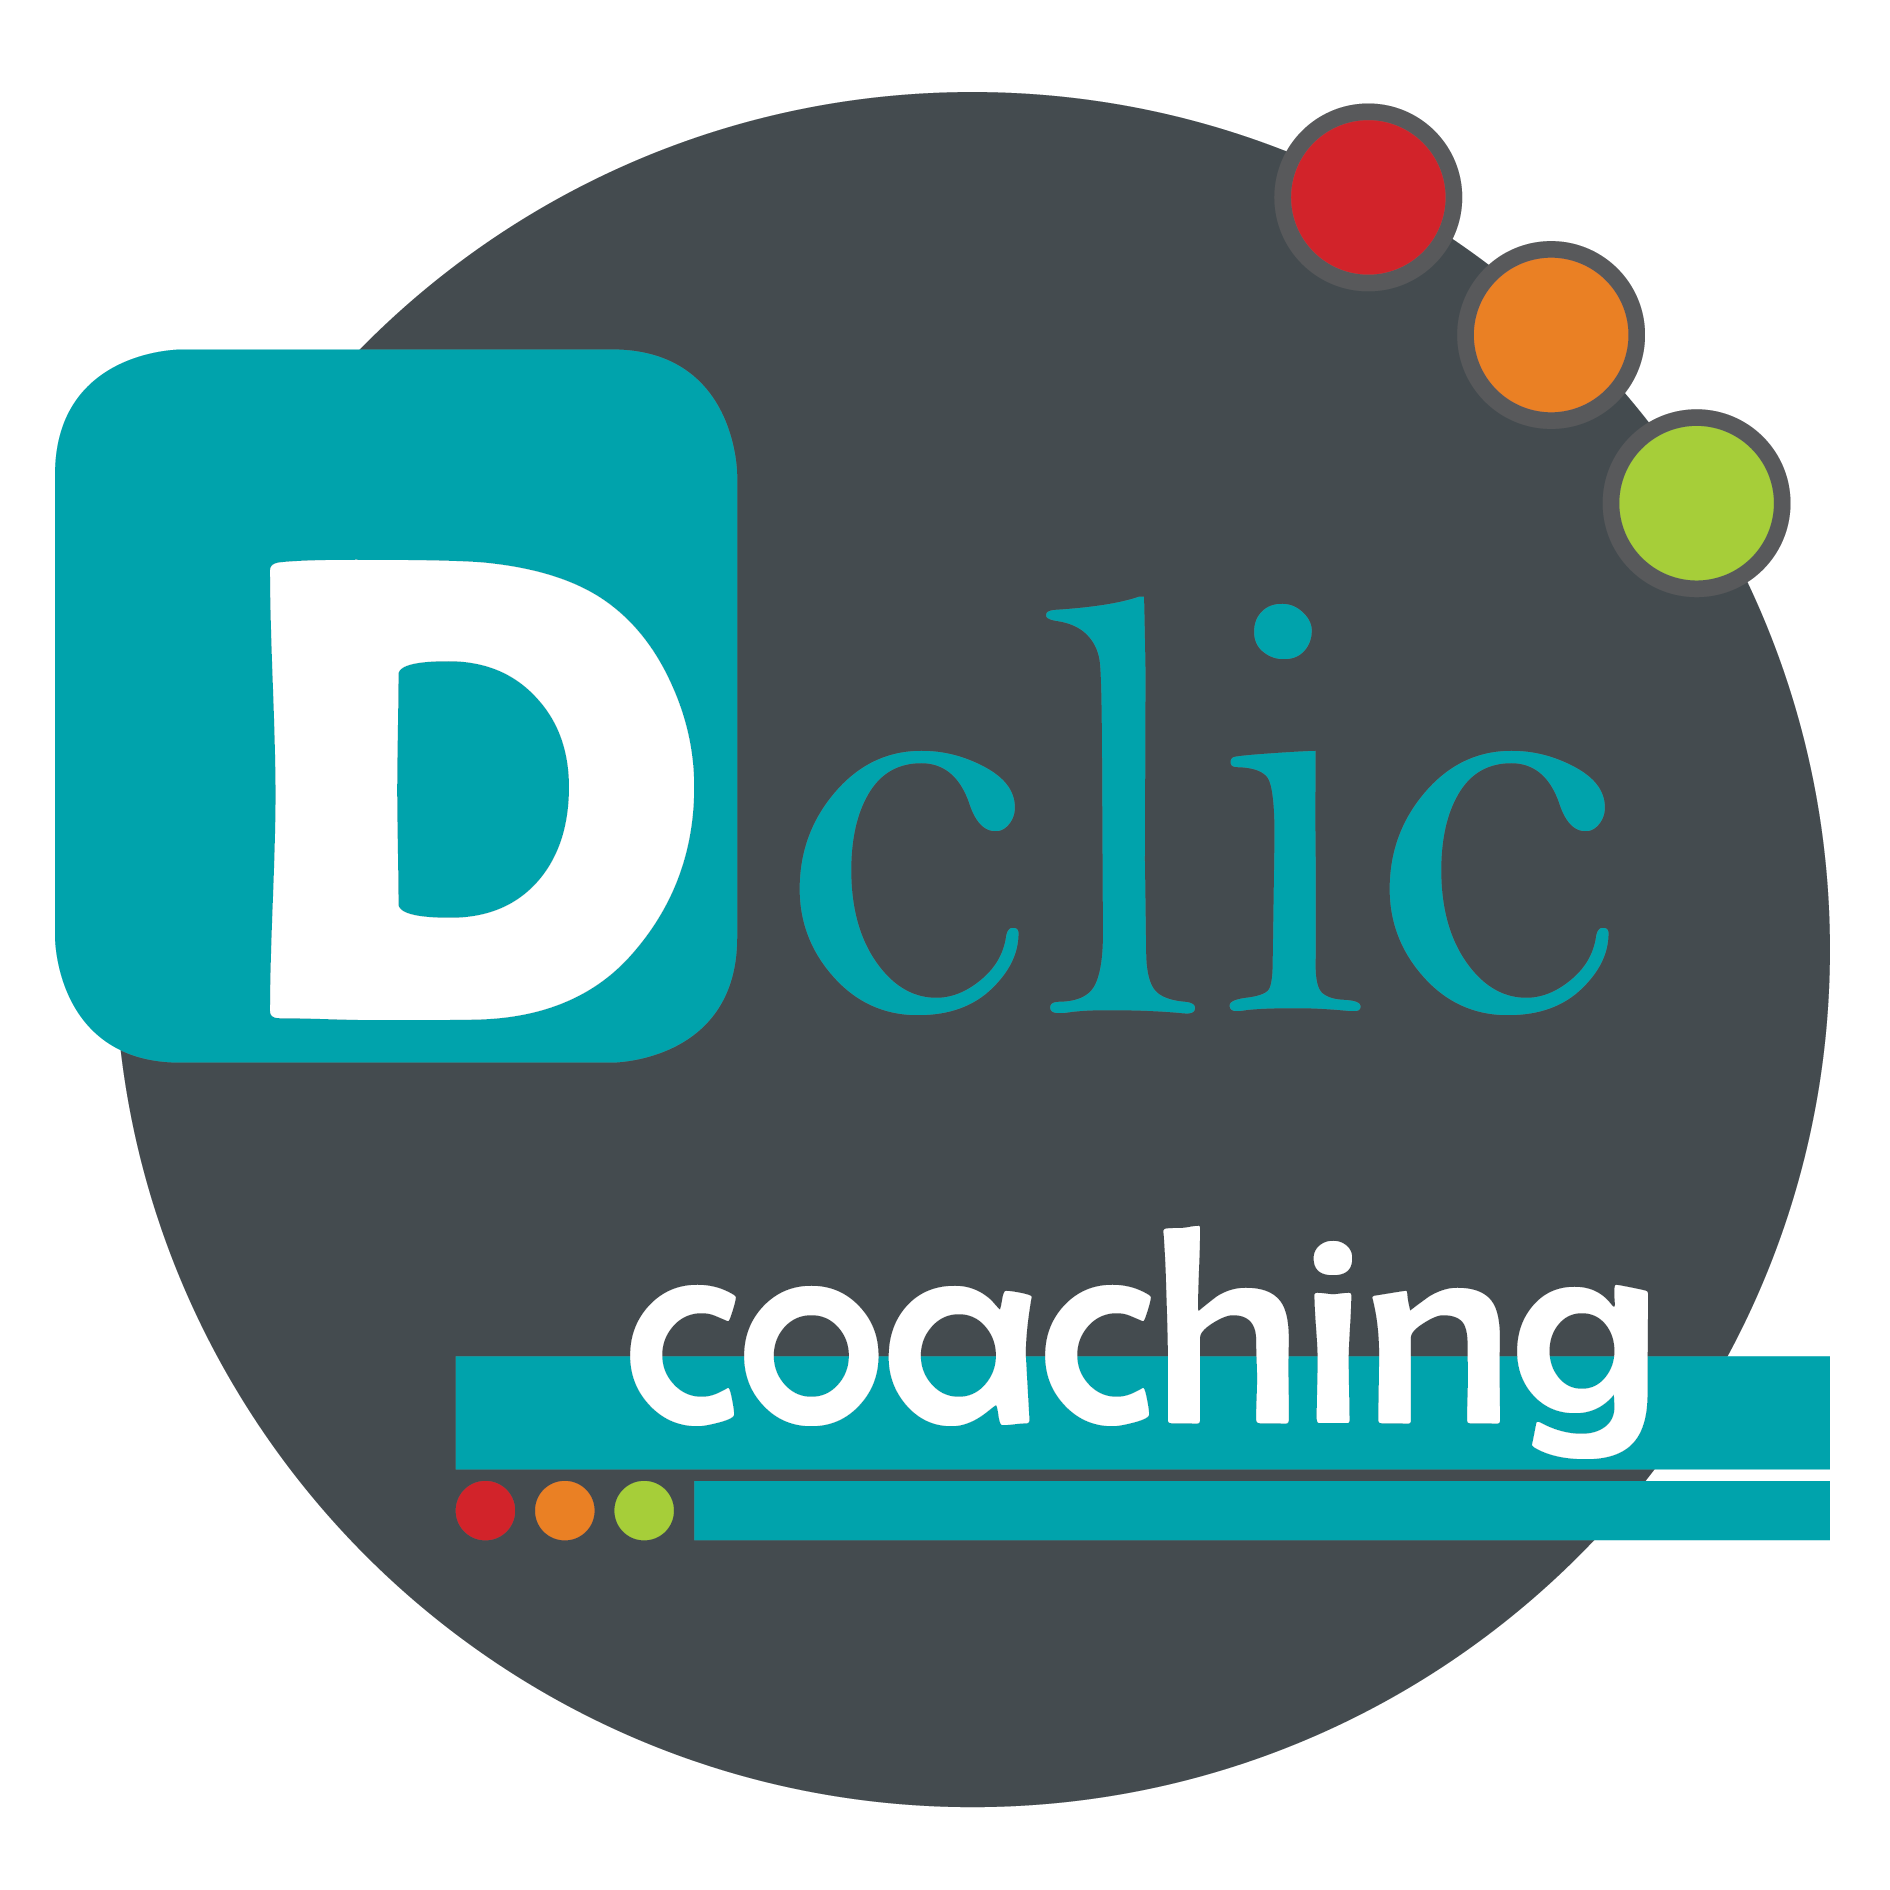 Logo dclic coaching